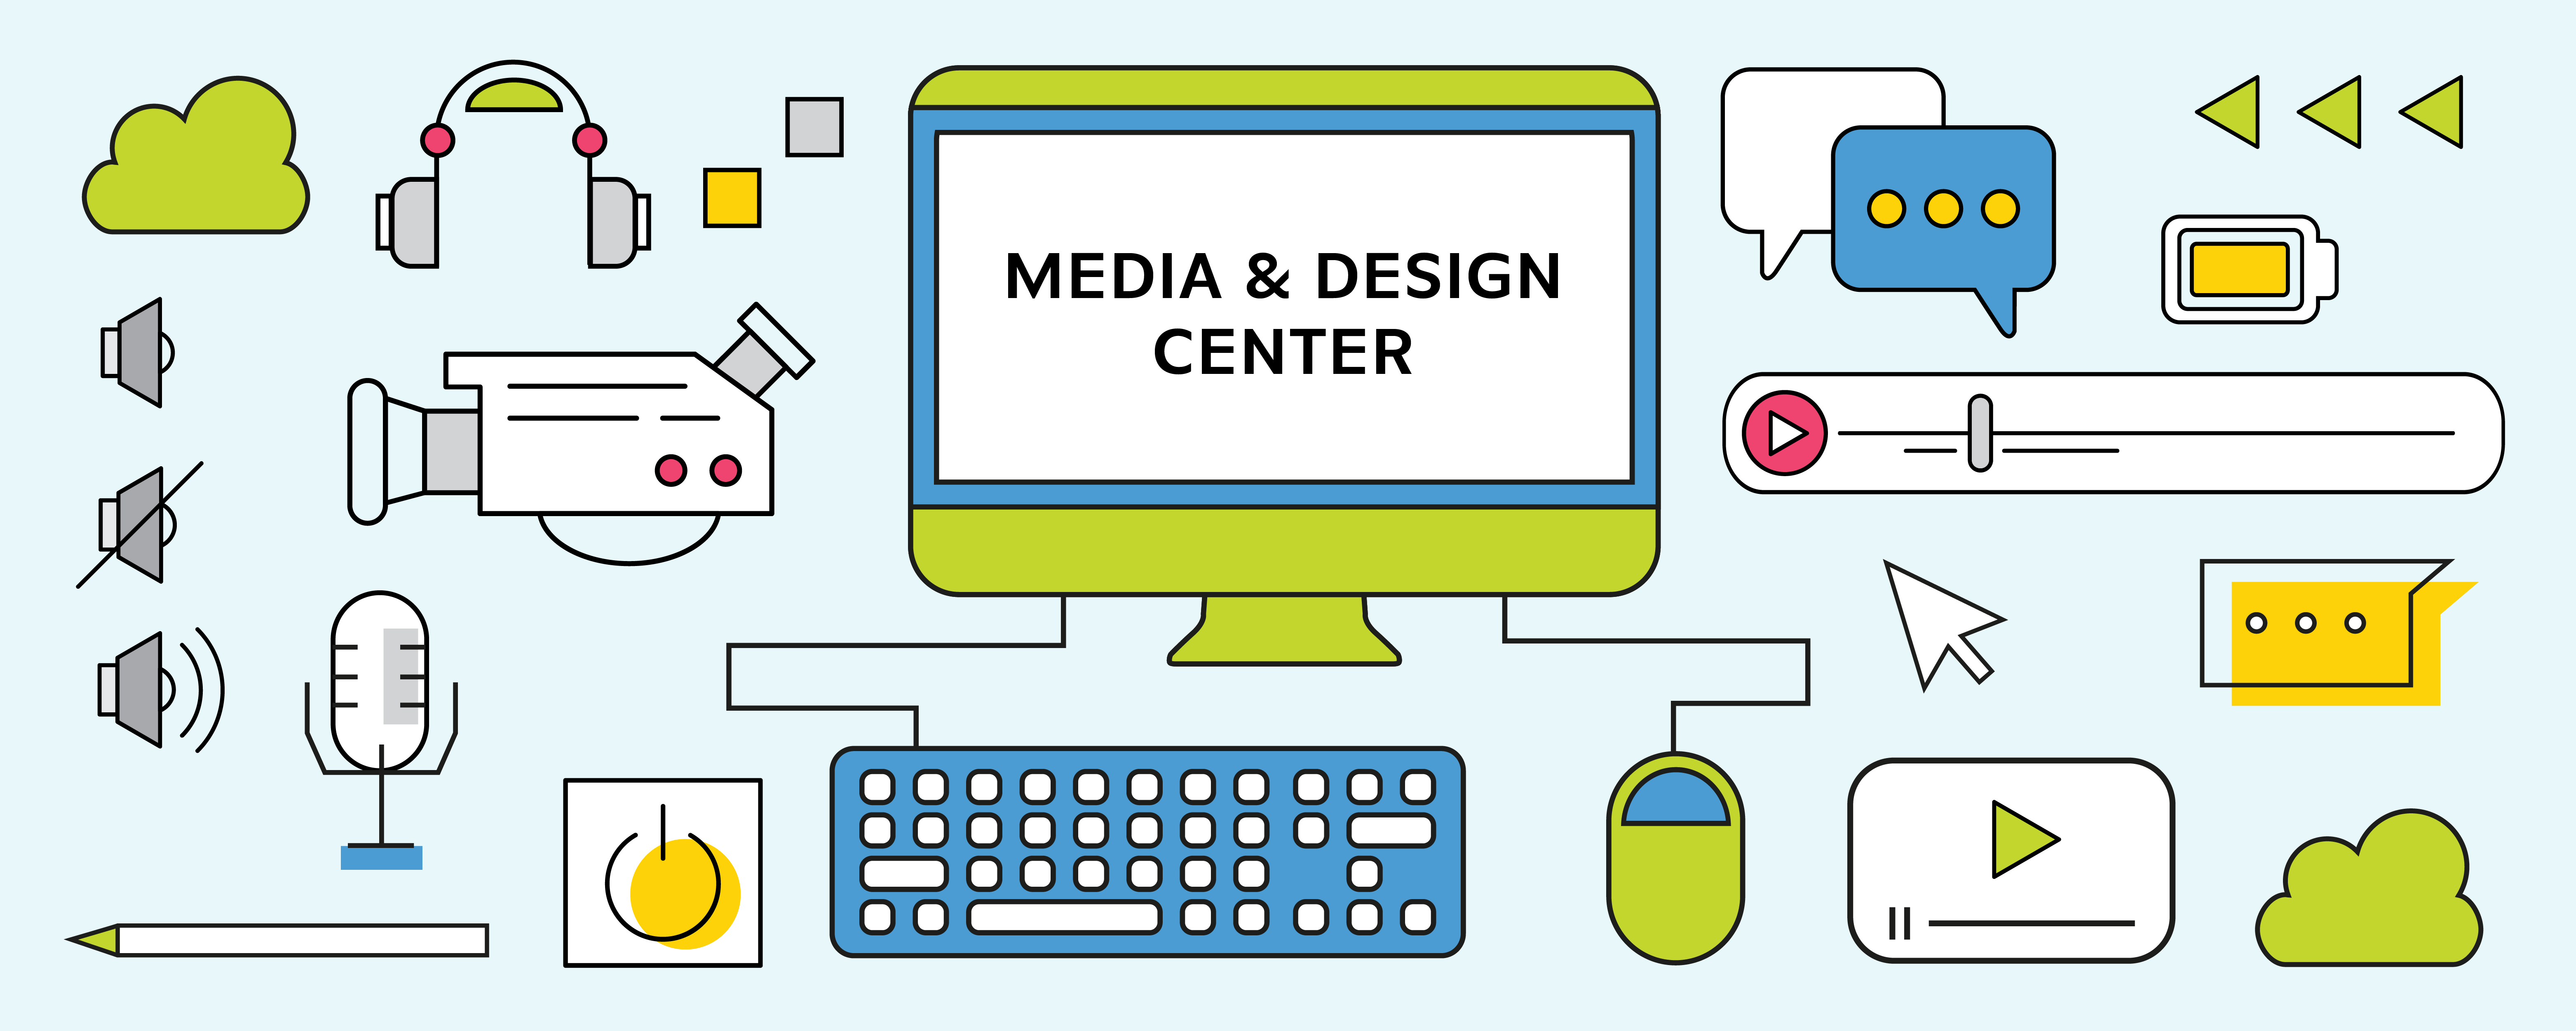 Computer screen displays Media & Design Center. Computer is surrounded by digital media icons and equipment.